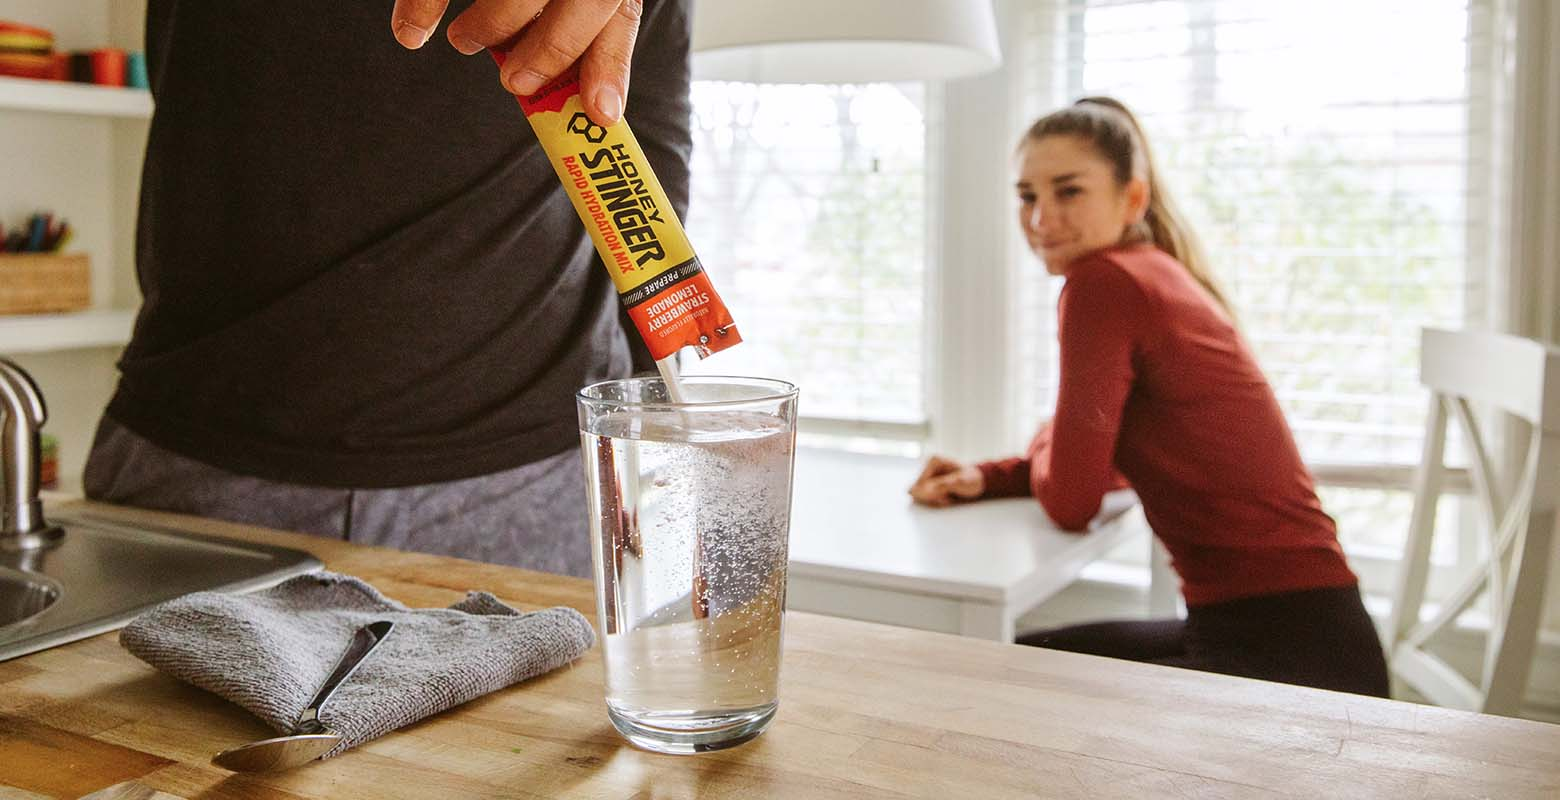 Honey Stinger launches the first-ever hydration system fueled by honey.